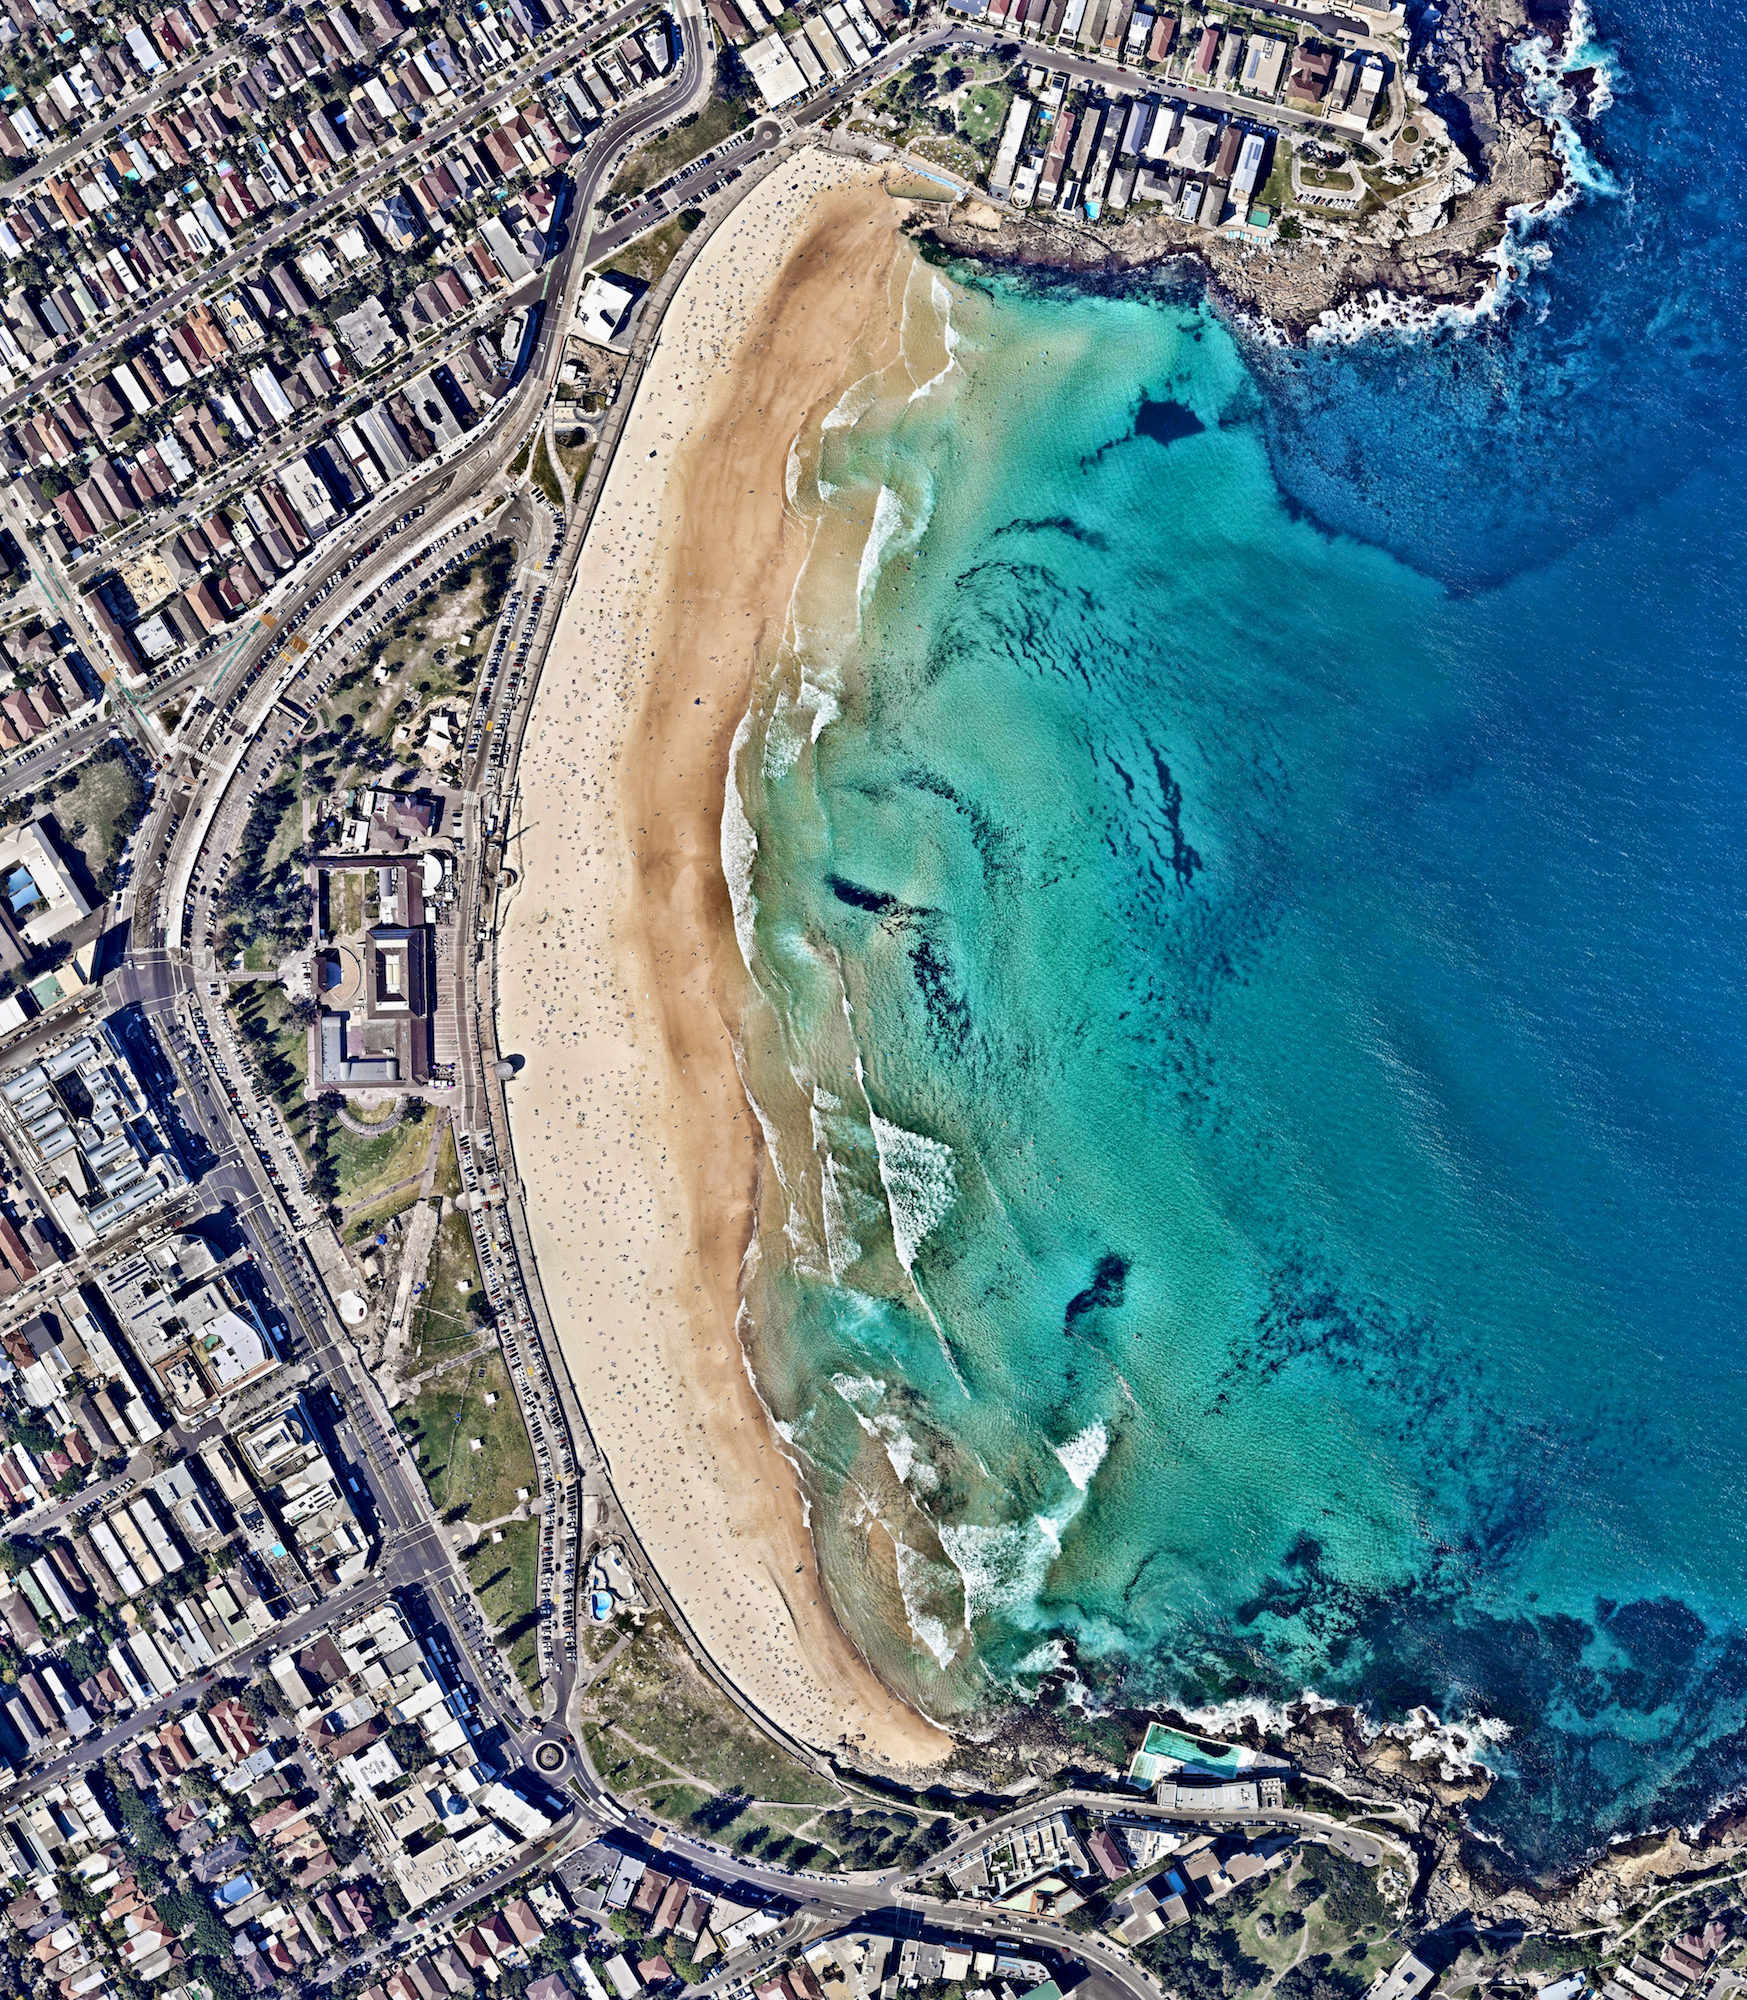 """11/12/2016  Bondi Beach  Sydney, Australia  33°53′28″S 151°16′40″E    Bondi Beach and its surrounding suburb are located in Sydney, Australia. One of the city's most stunning and popular destinations, the beach gets its name from the Aboriginal word """"Bondi"""" that means waves breaking over rocks.  Source imagery: Nearmap"""